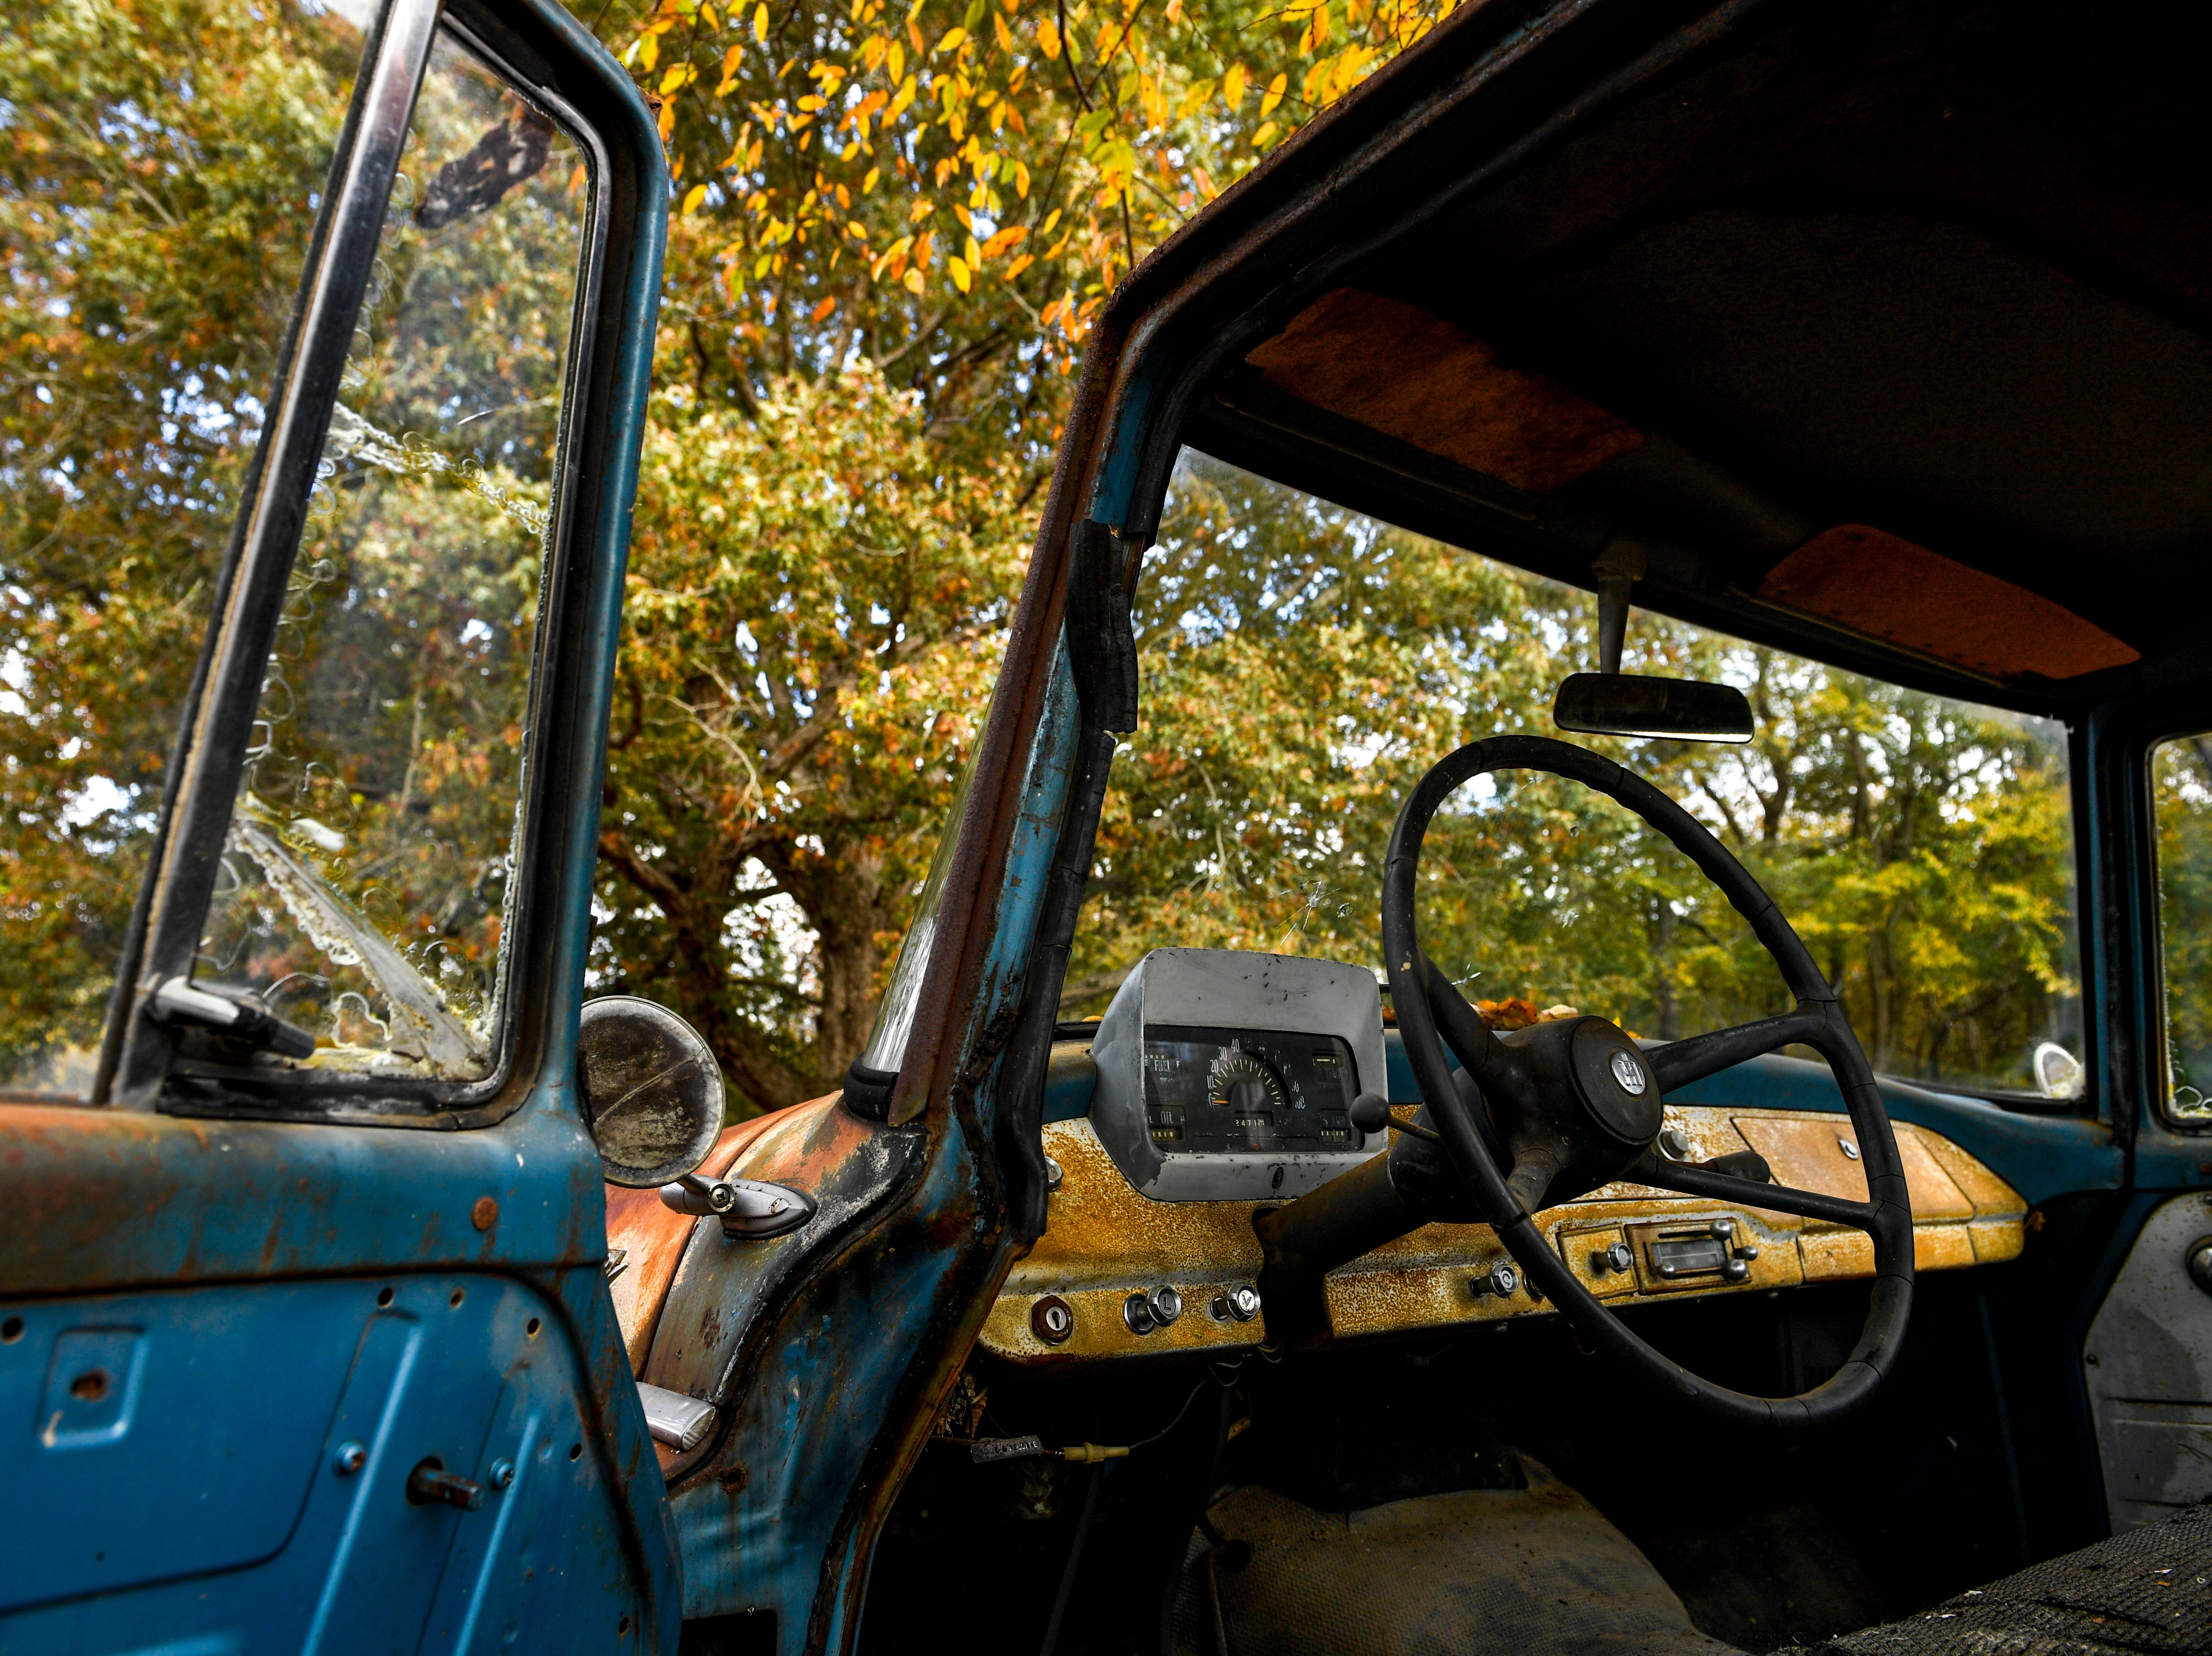 The interior of an International truck as shown at Stillwaters Farm in Henderson, Tenn., on Monday, Nov. 5, 2018.